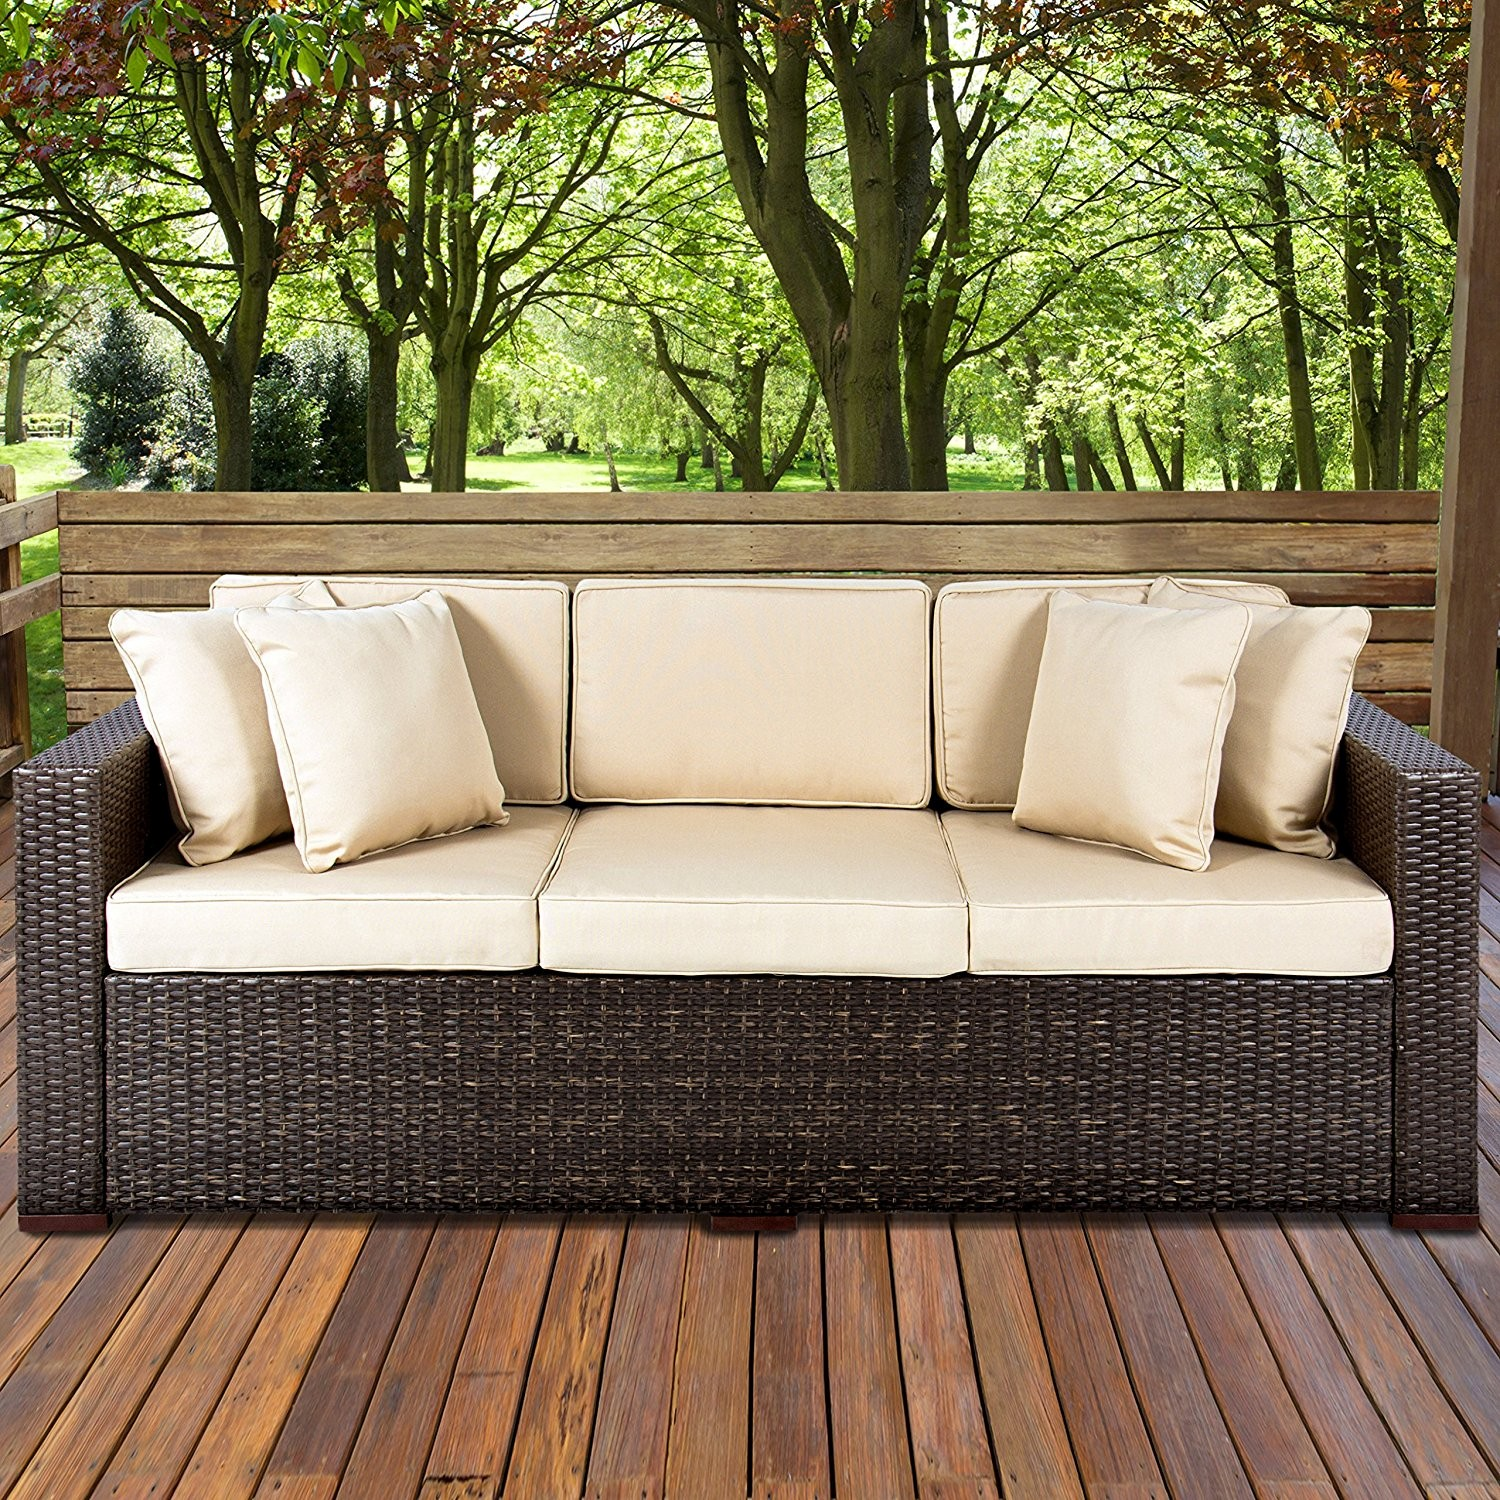 Wicker Outdoor sofa Cool Amazon Best Choiceproducts Outdoor Wicker Patio Furniture Gallery